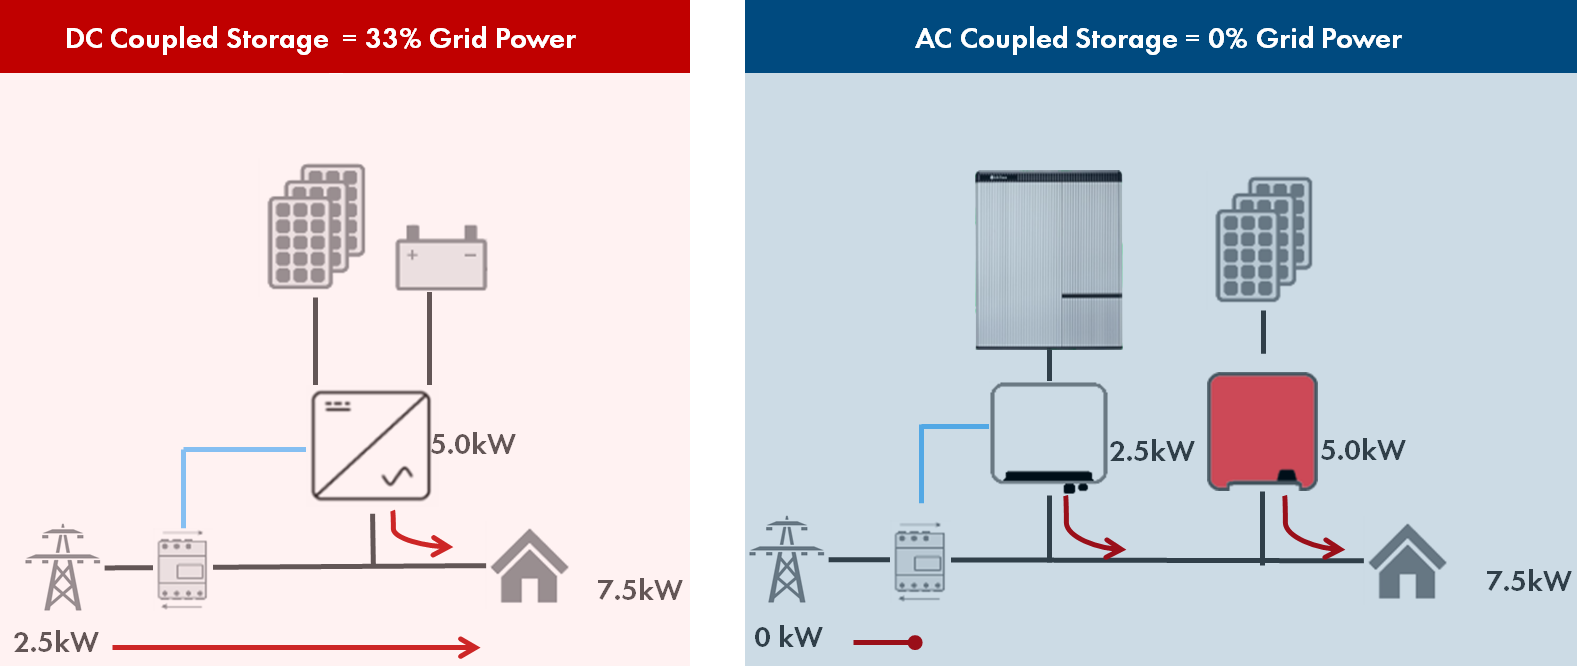 Advantages Of Ac Coupled High Voltage Battery Over